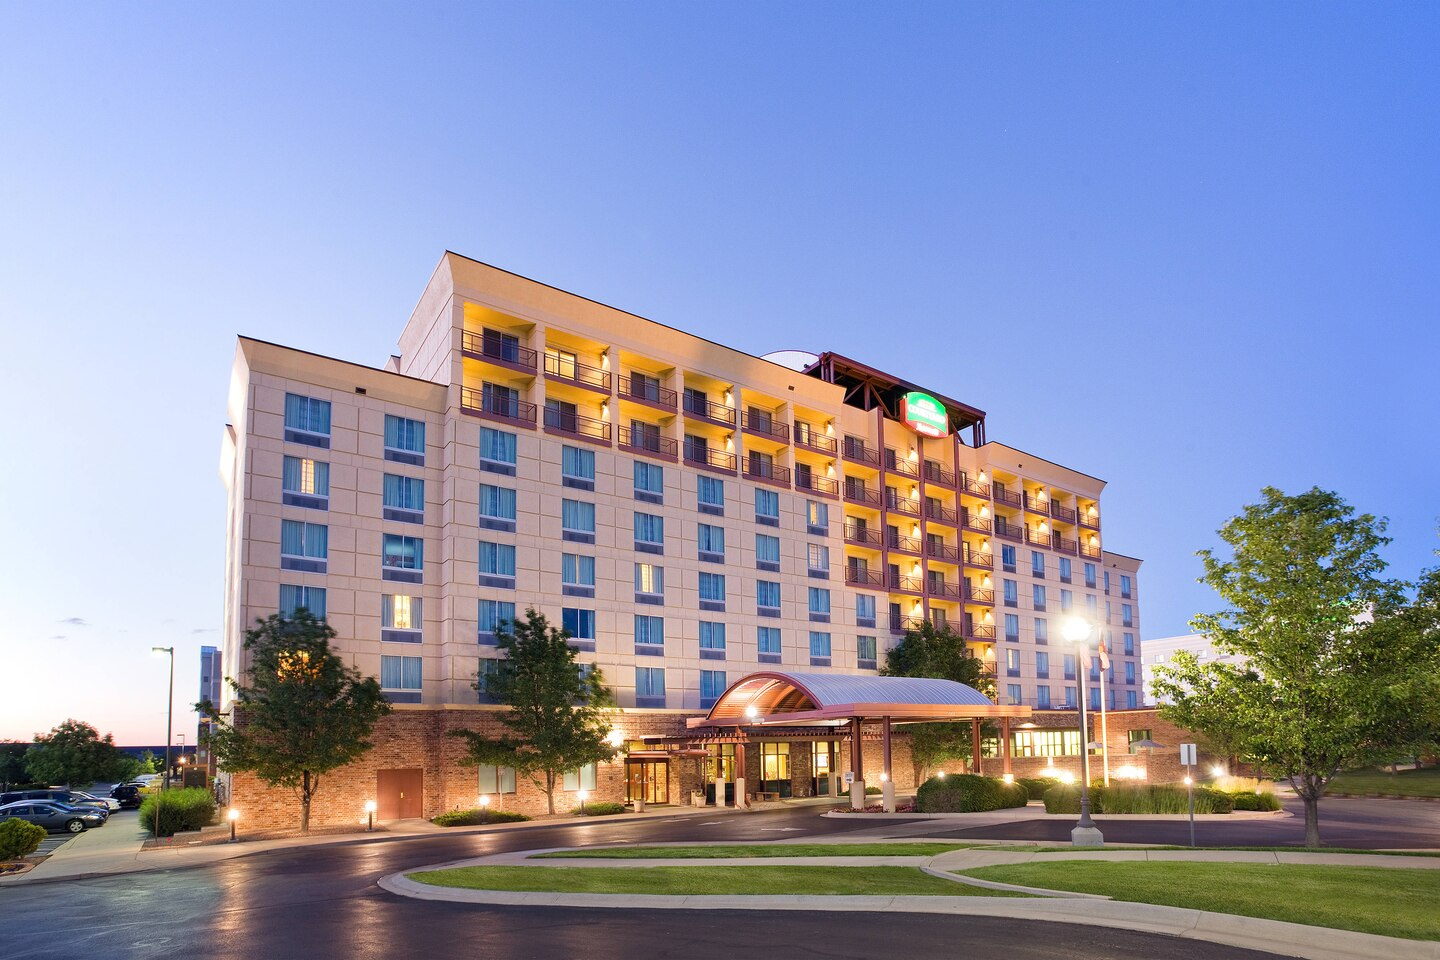 Pure Rooms Eliminate Contaminants at the Courtyard Denver Airport